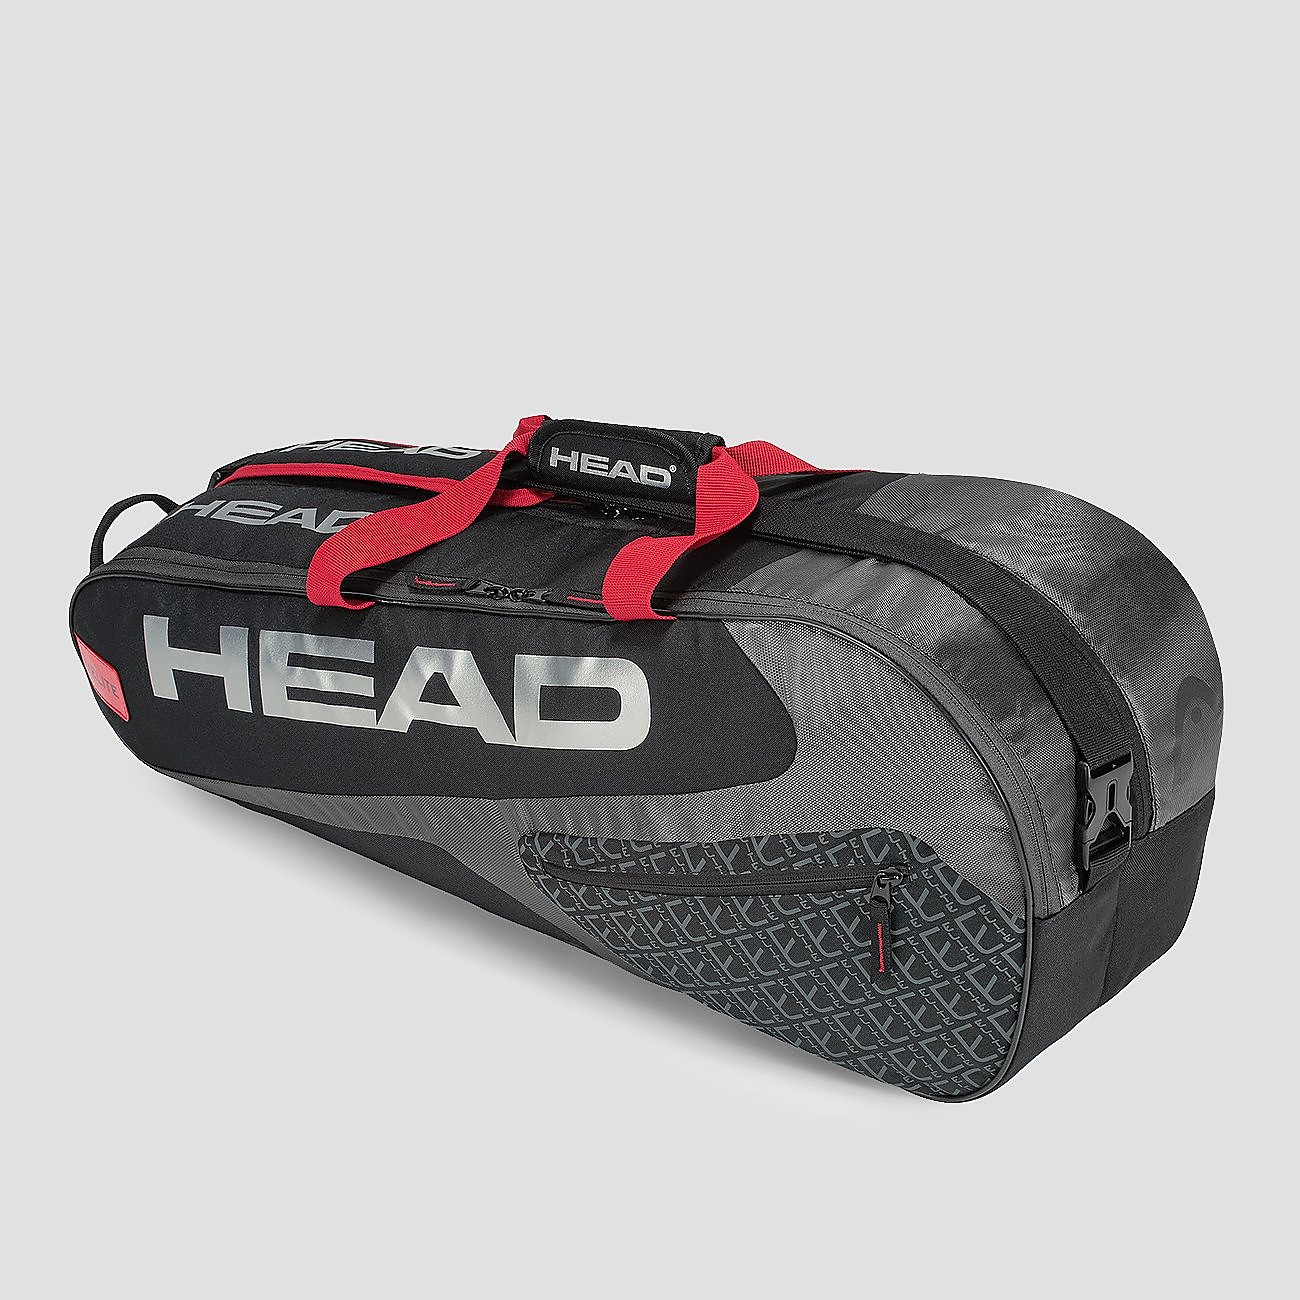 HEAD ELITE 6 RACKETS COMBI TENNISTAS ZWART/GRIJS